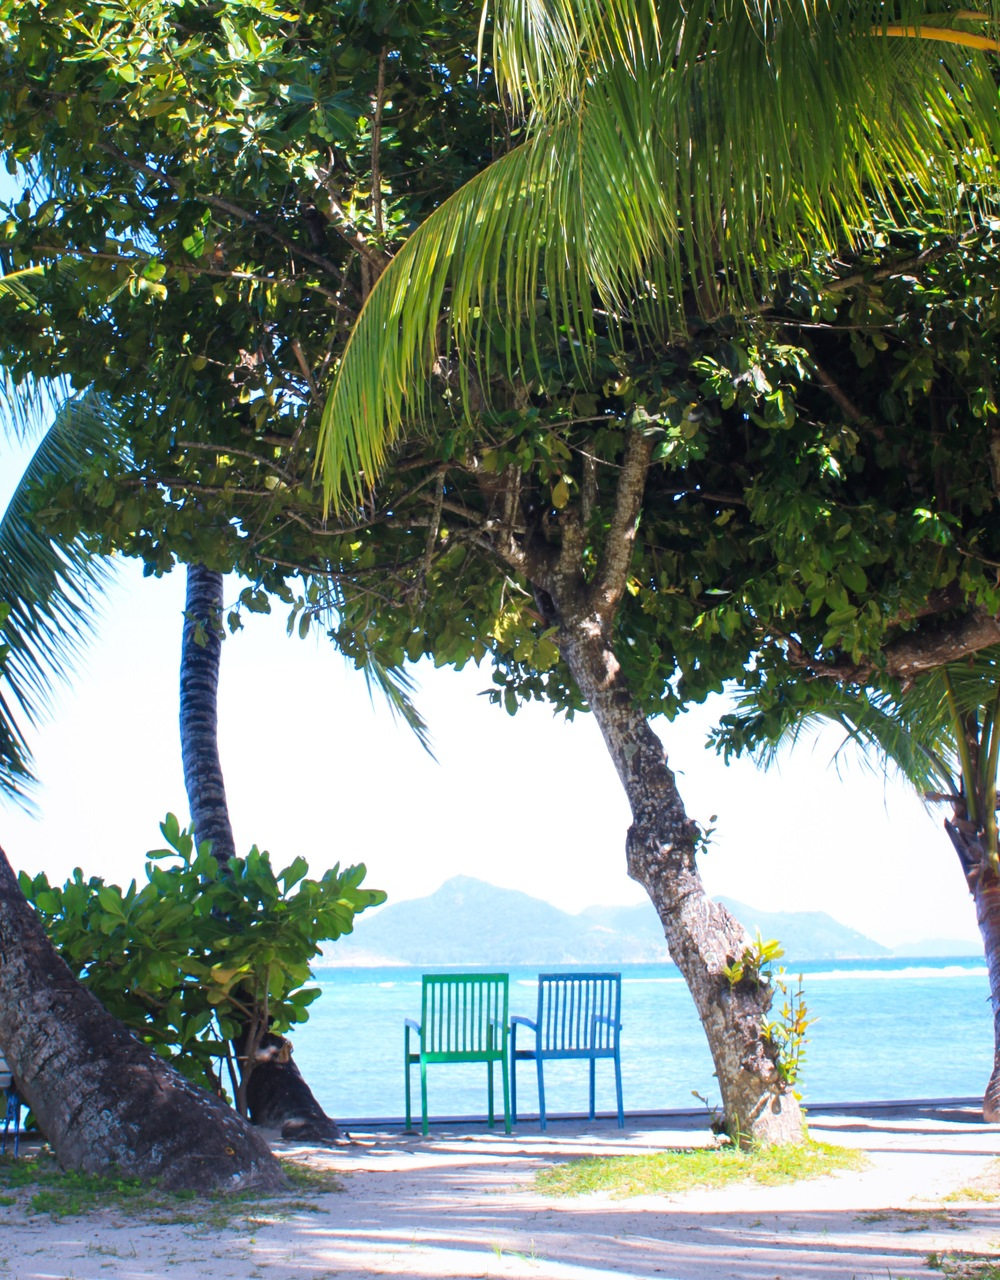 VIew outside of the La Digue Island Lodge